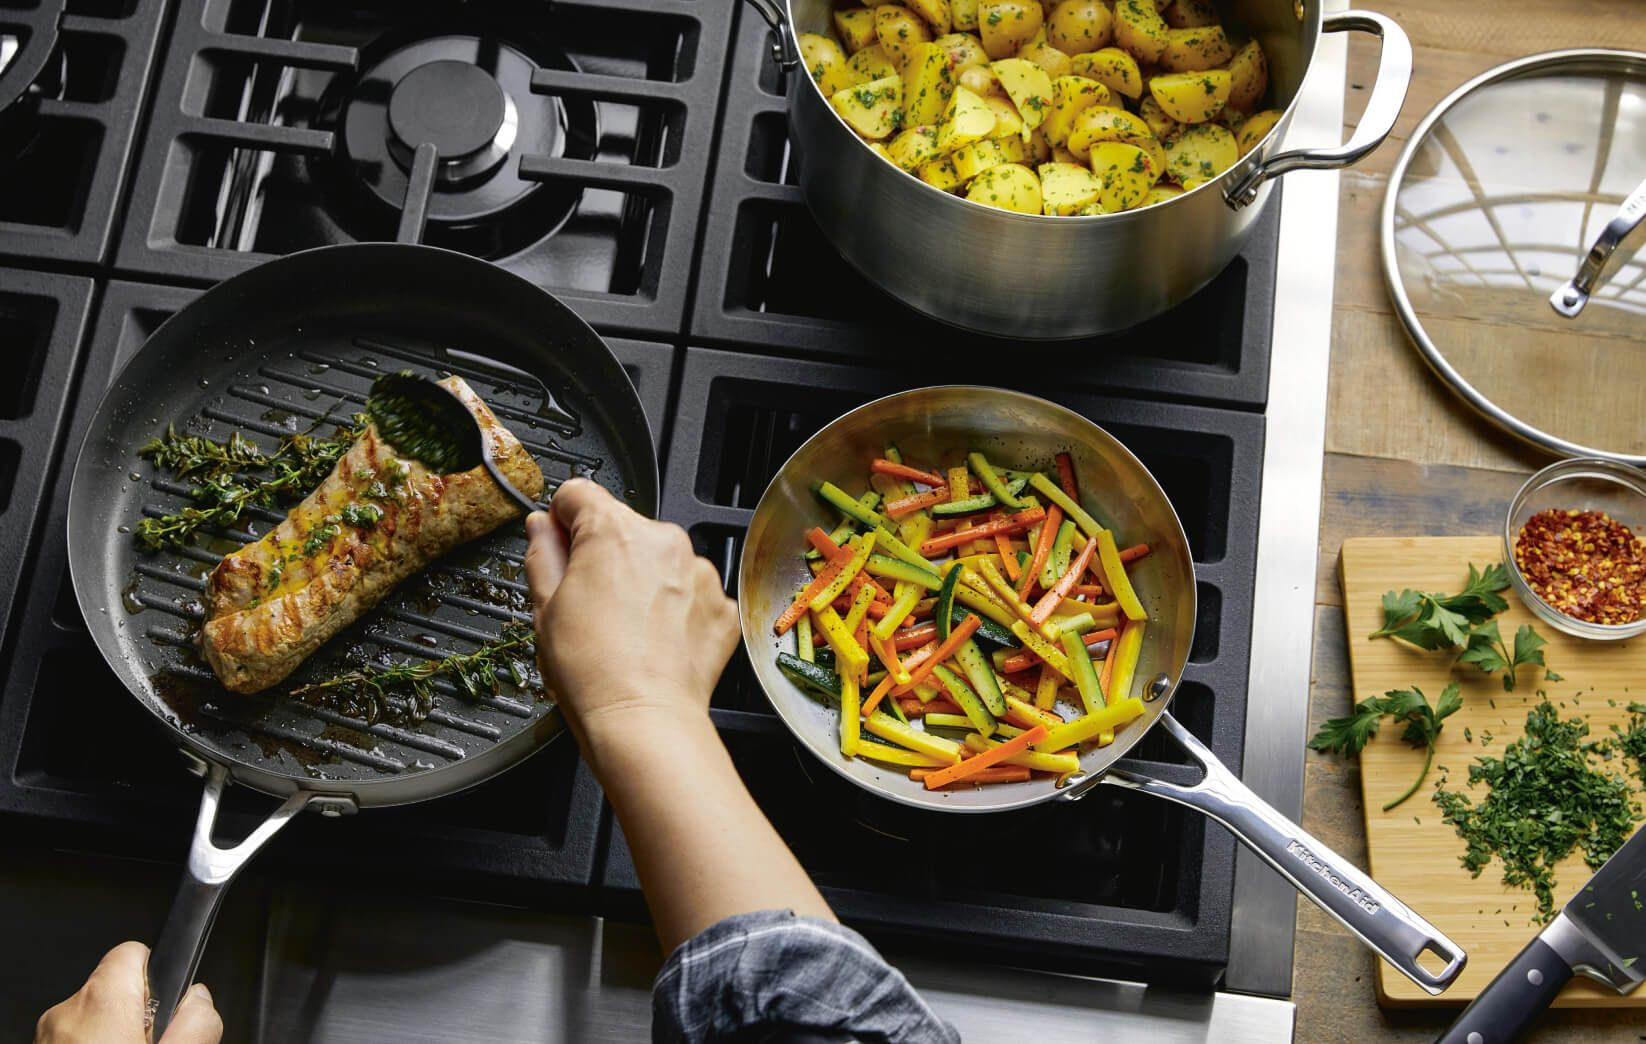 A person cooking with a stainless steel 3-ply base pan.